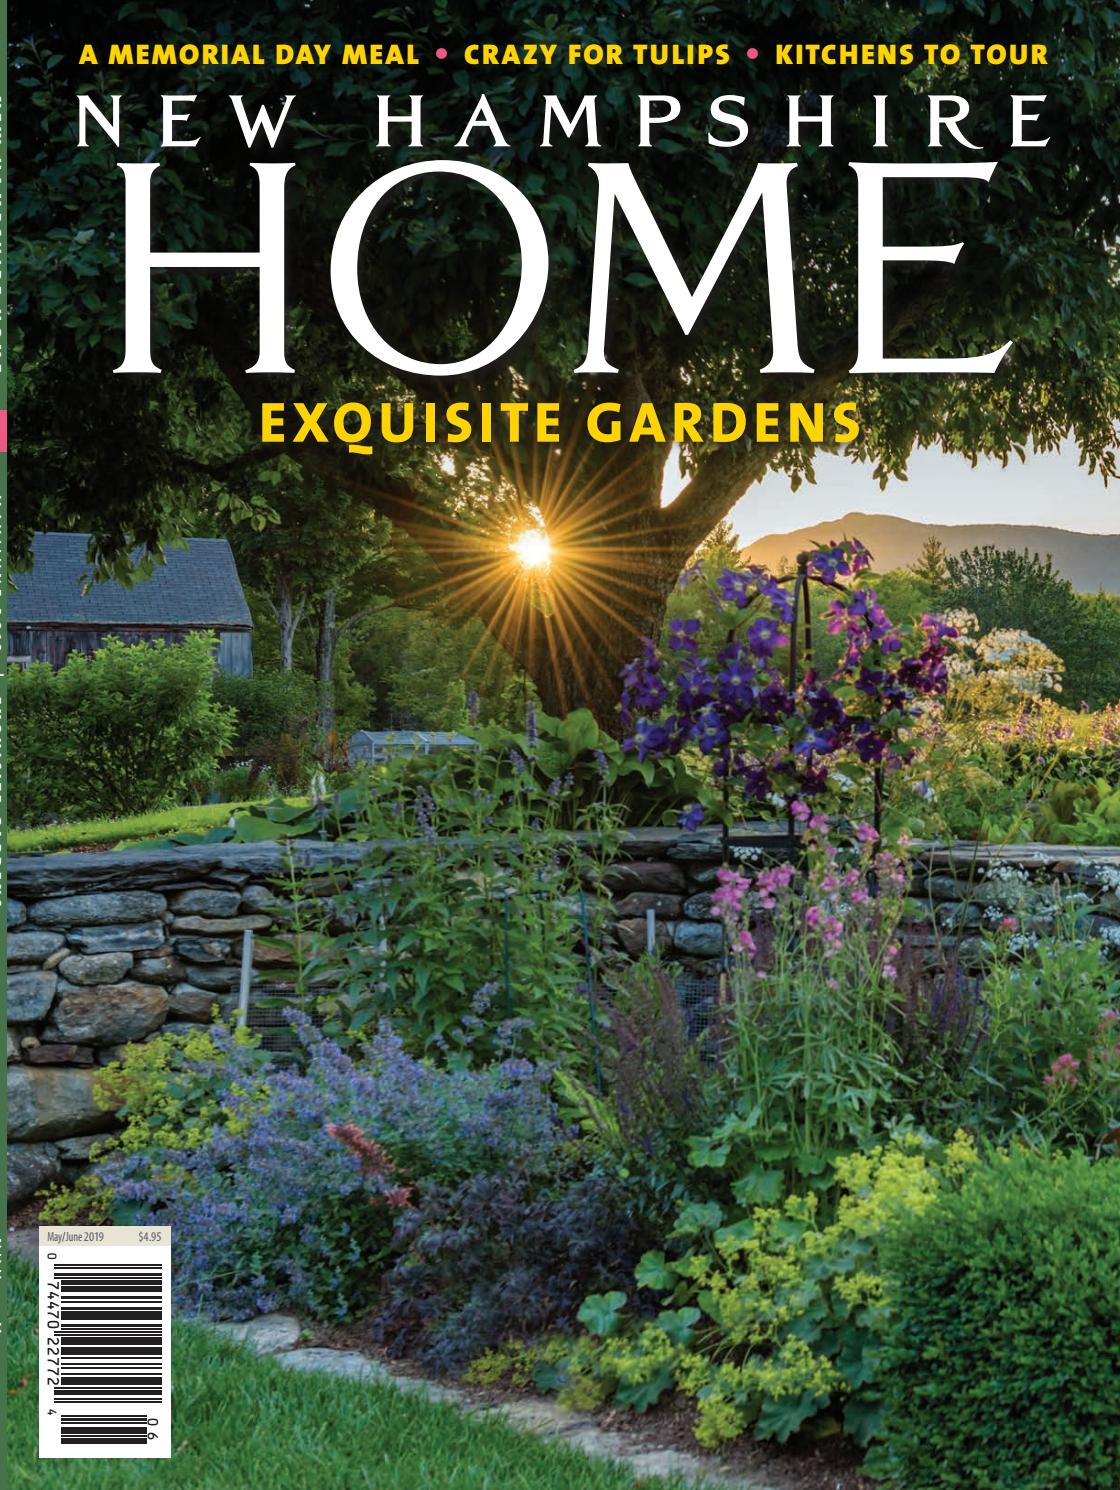 dreamy woodland decor to try better homes gardens.htm new hampshire home may june 2019 by mclean communications issuu  new hampshire home may june 2019 by